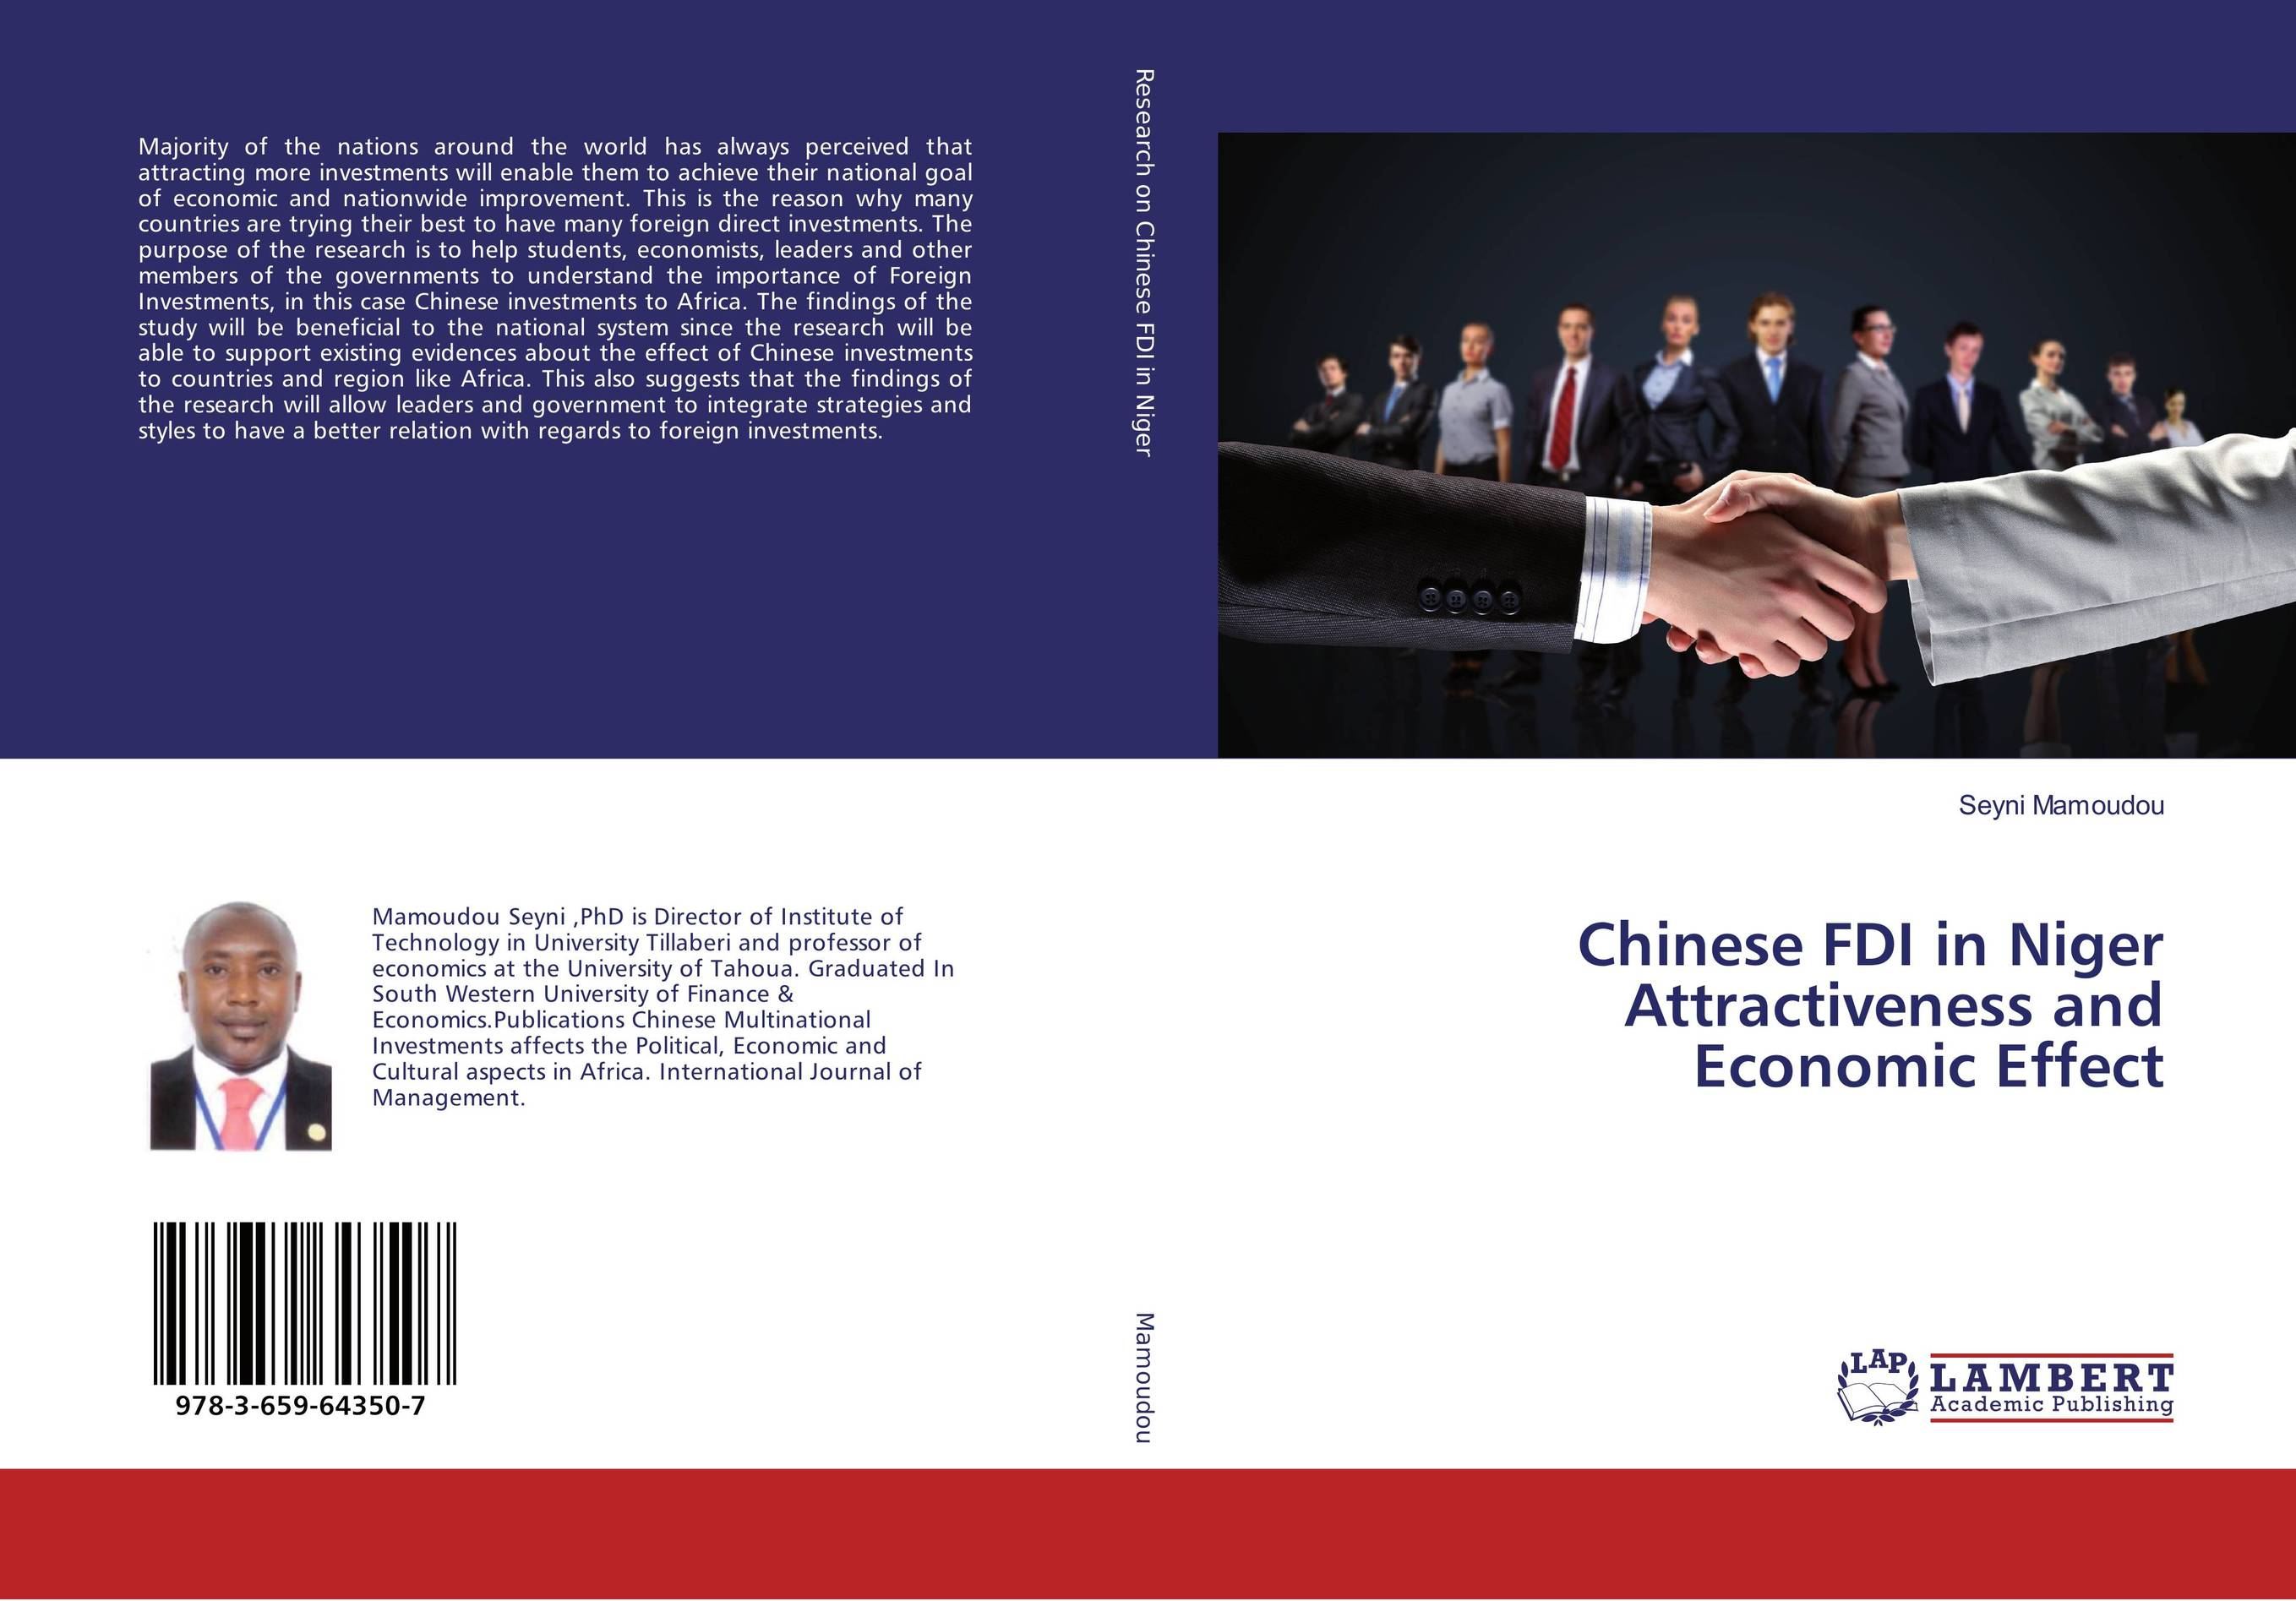 Фото Chinese FDI in Niger Attractiveness and Economic Effect finance and investments